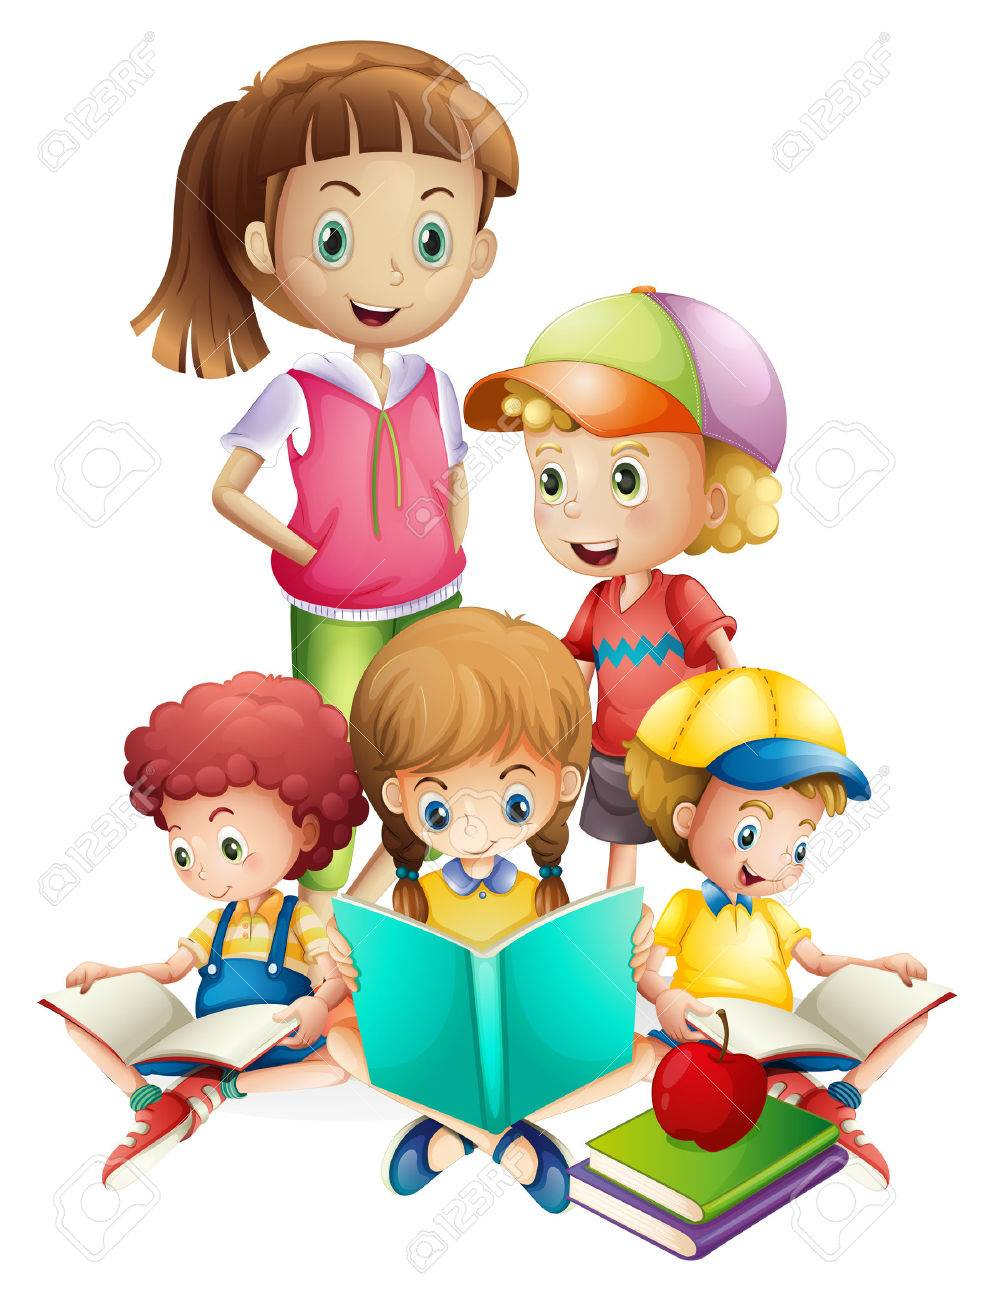 boys and girls reading book illustration royalty free cliparts